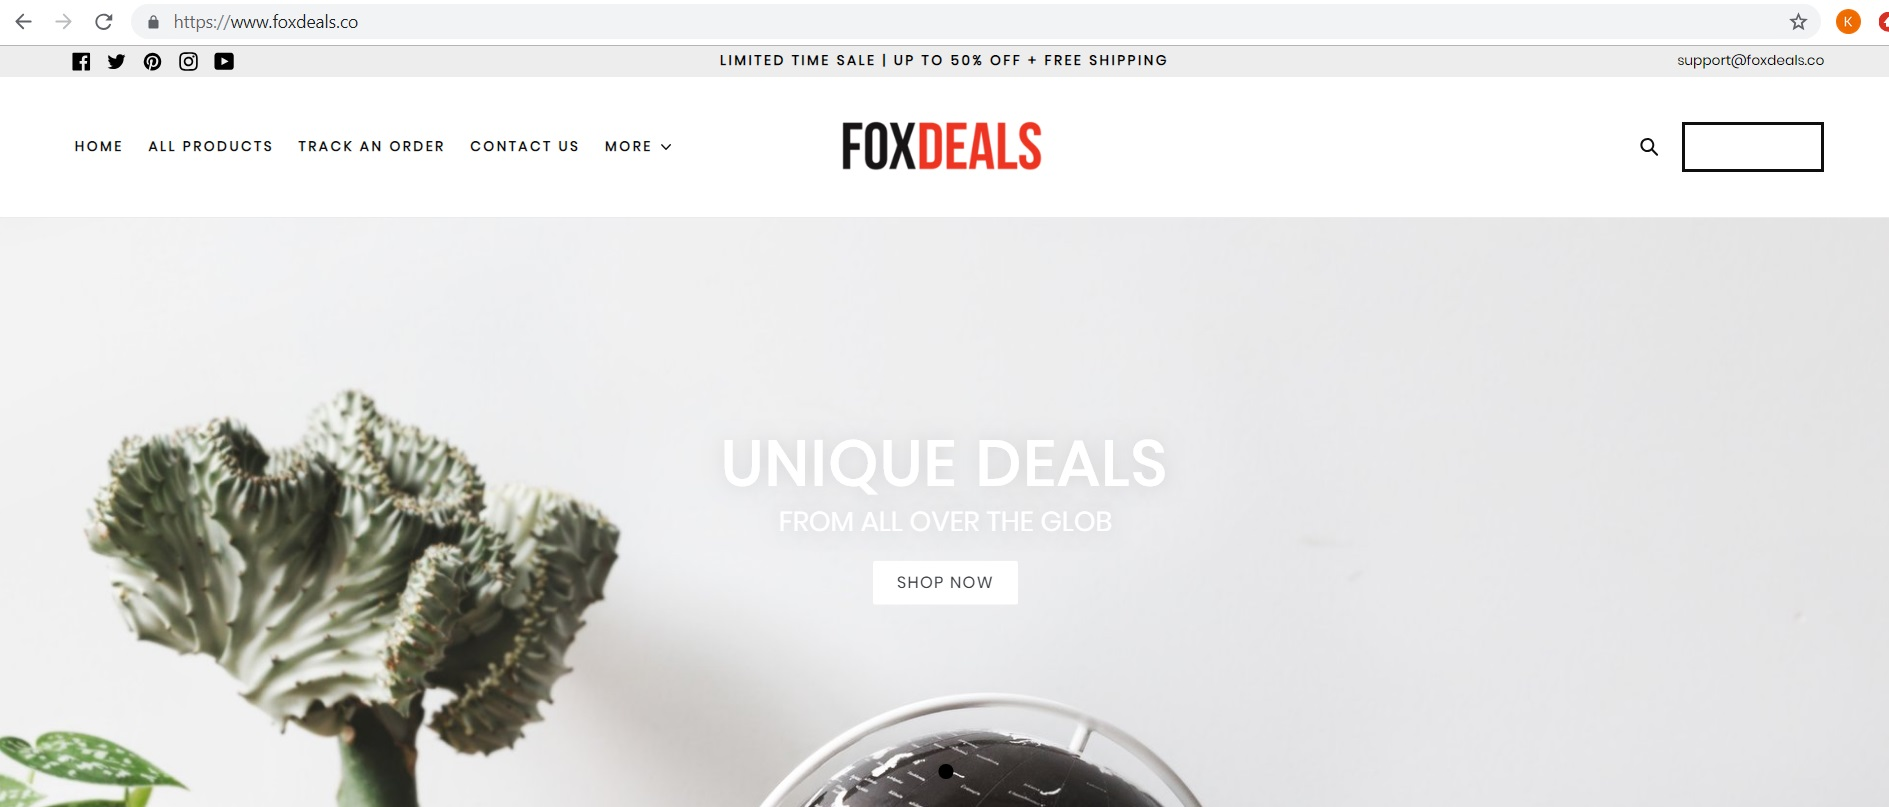 www.foxdeals.co